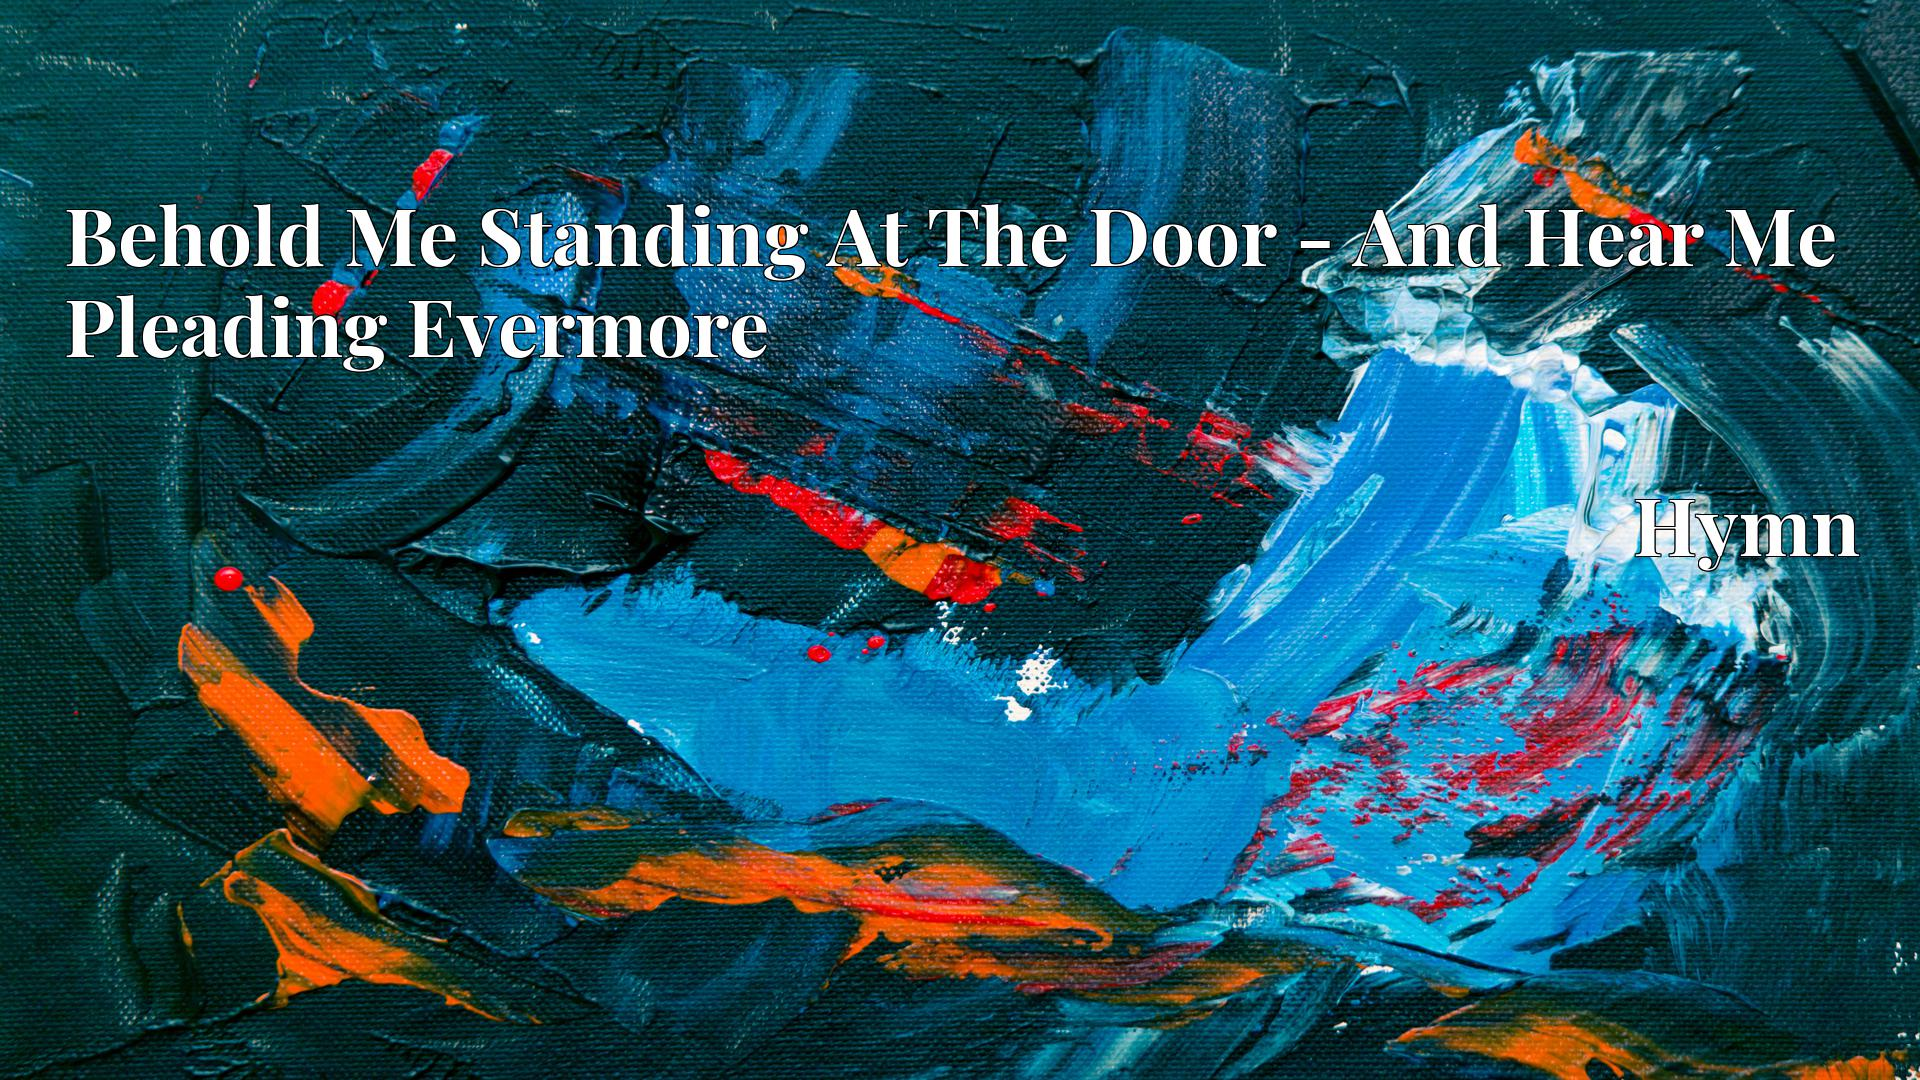 Behold Me Standing At The Door - And Hear Me Pleading Evermore - Hymn